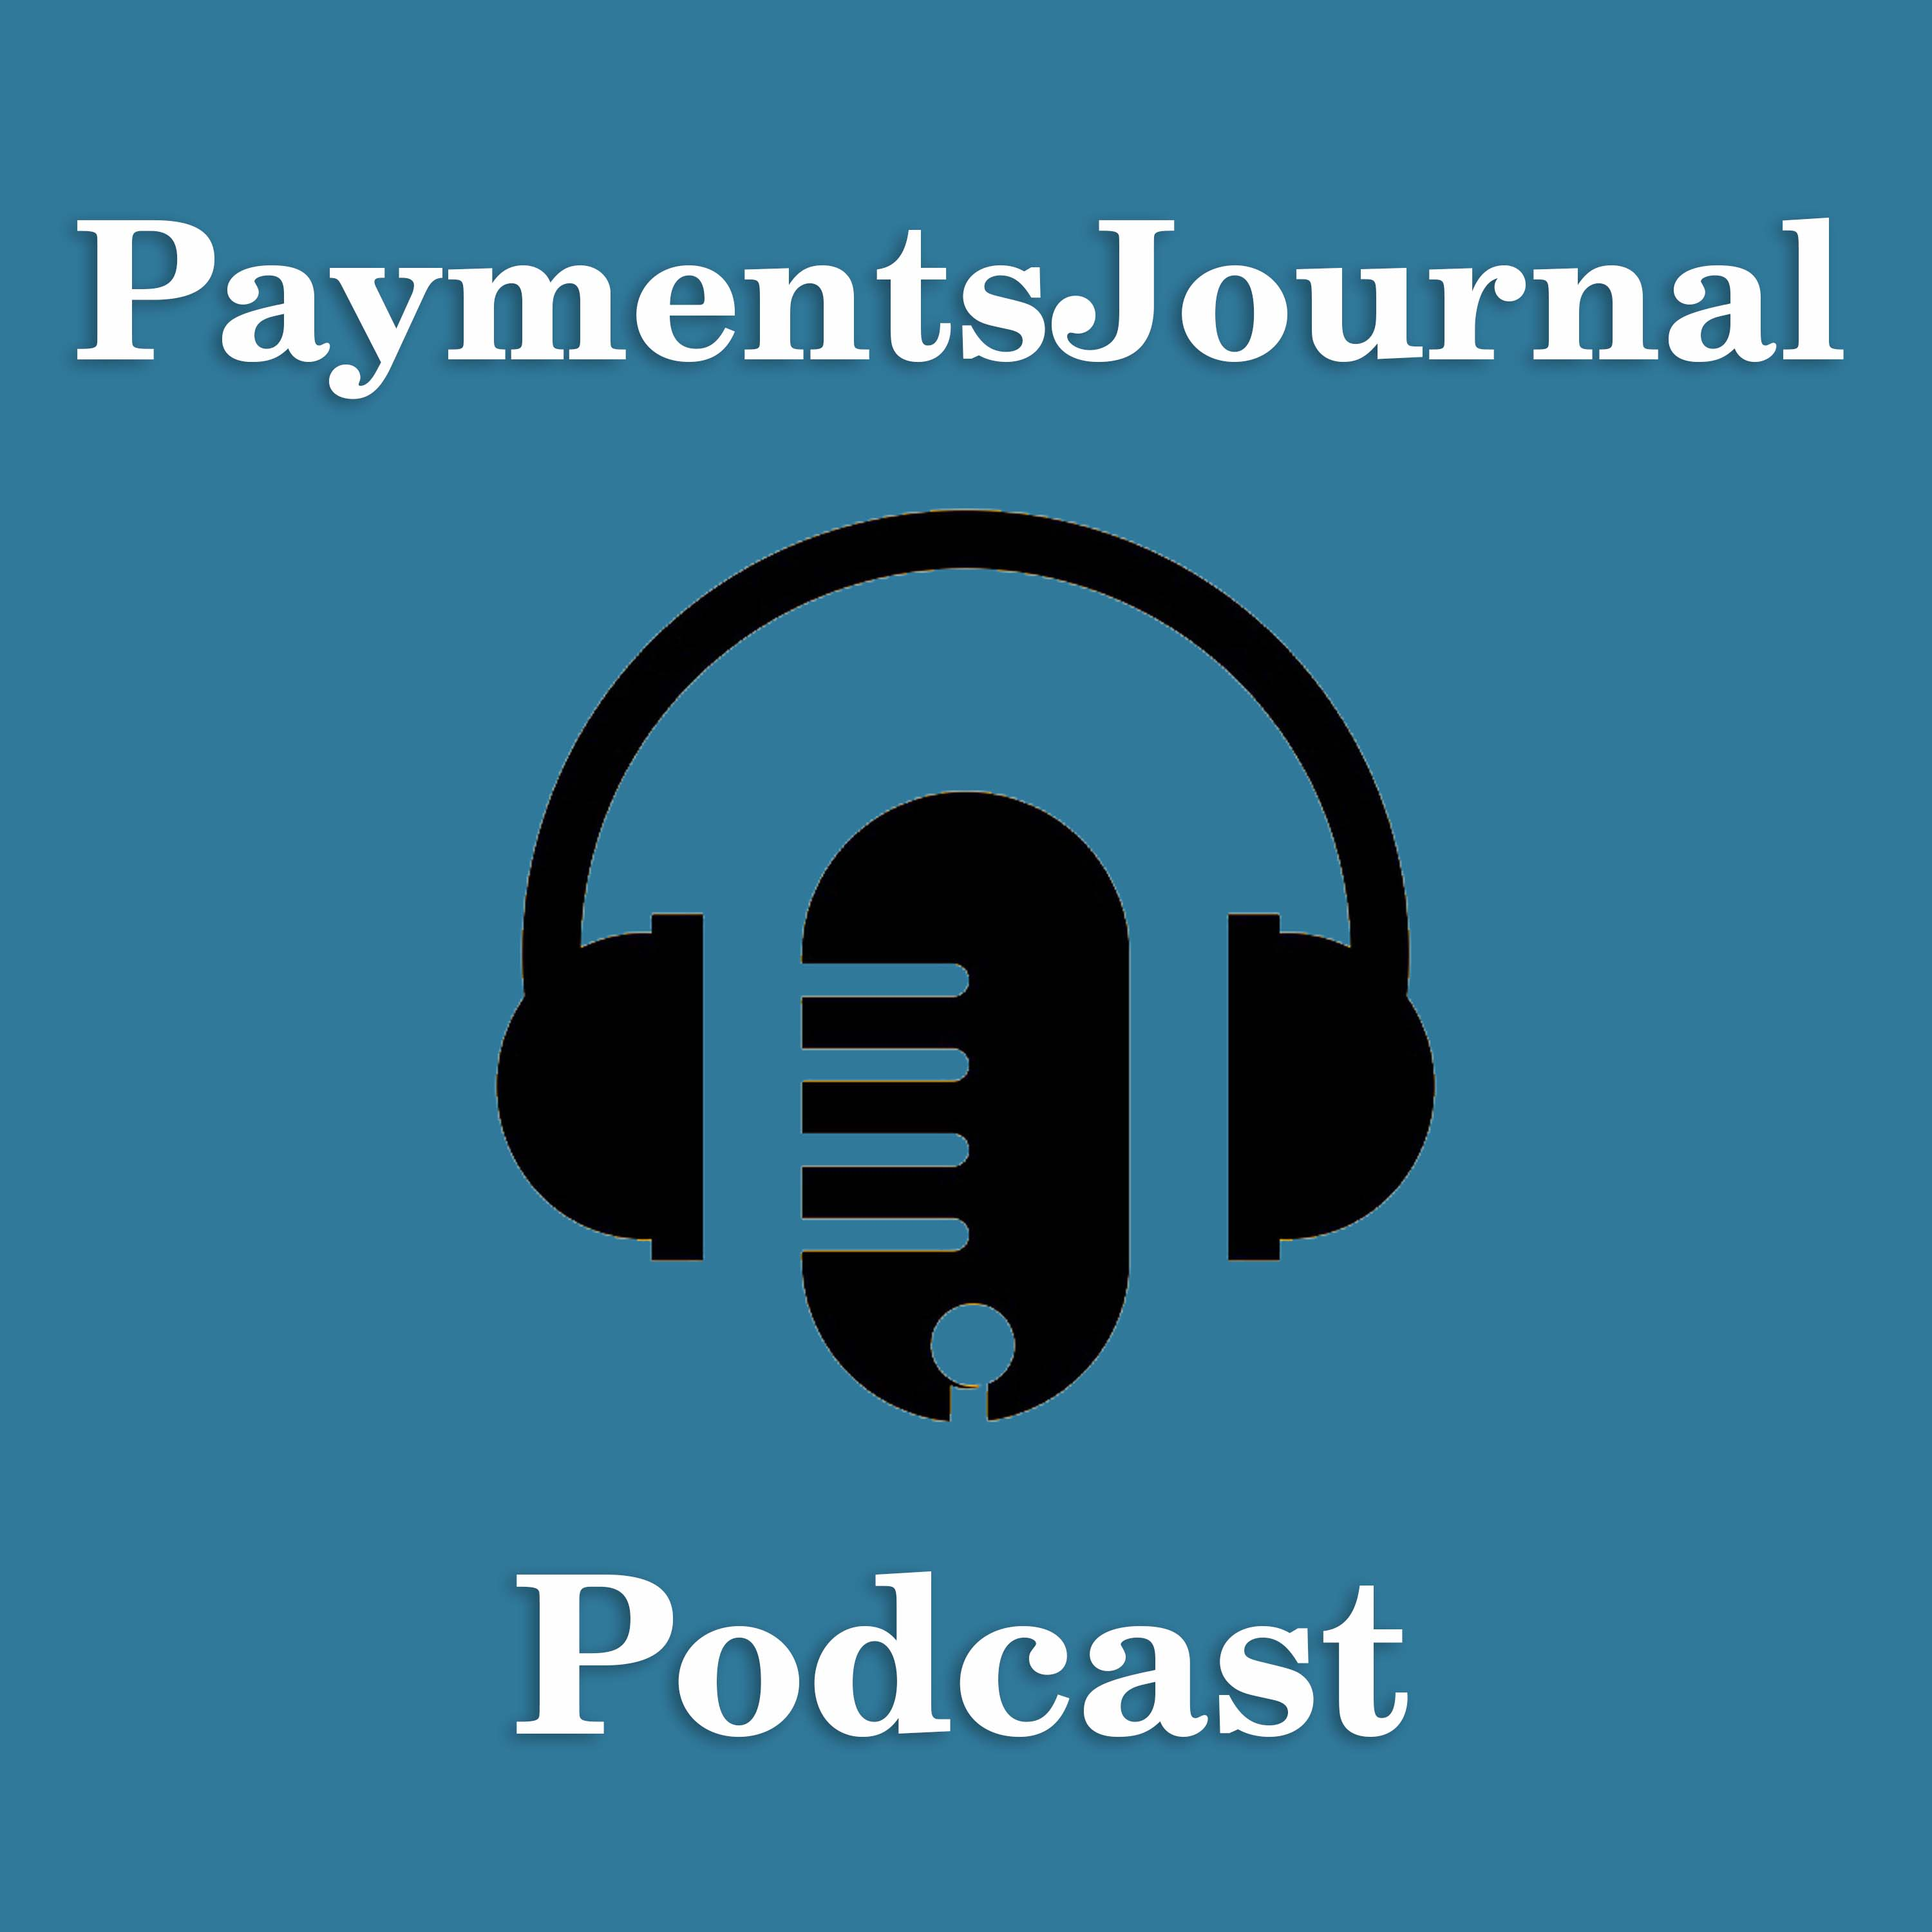 The PaymentsJournal Podcast – PaymentsJournal